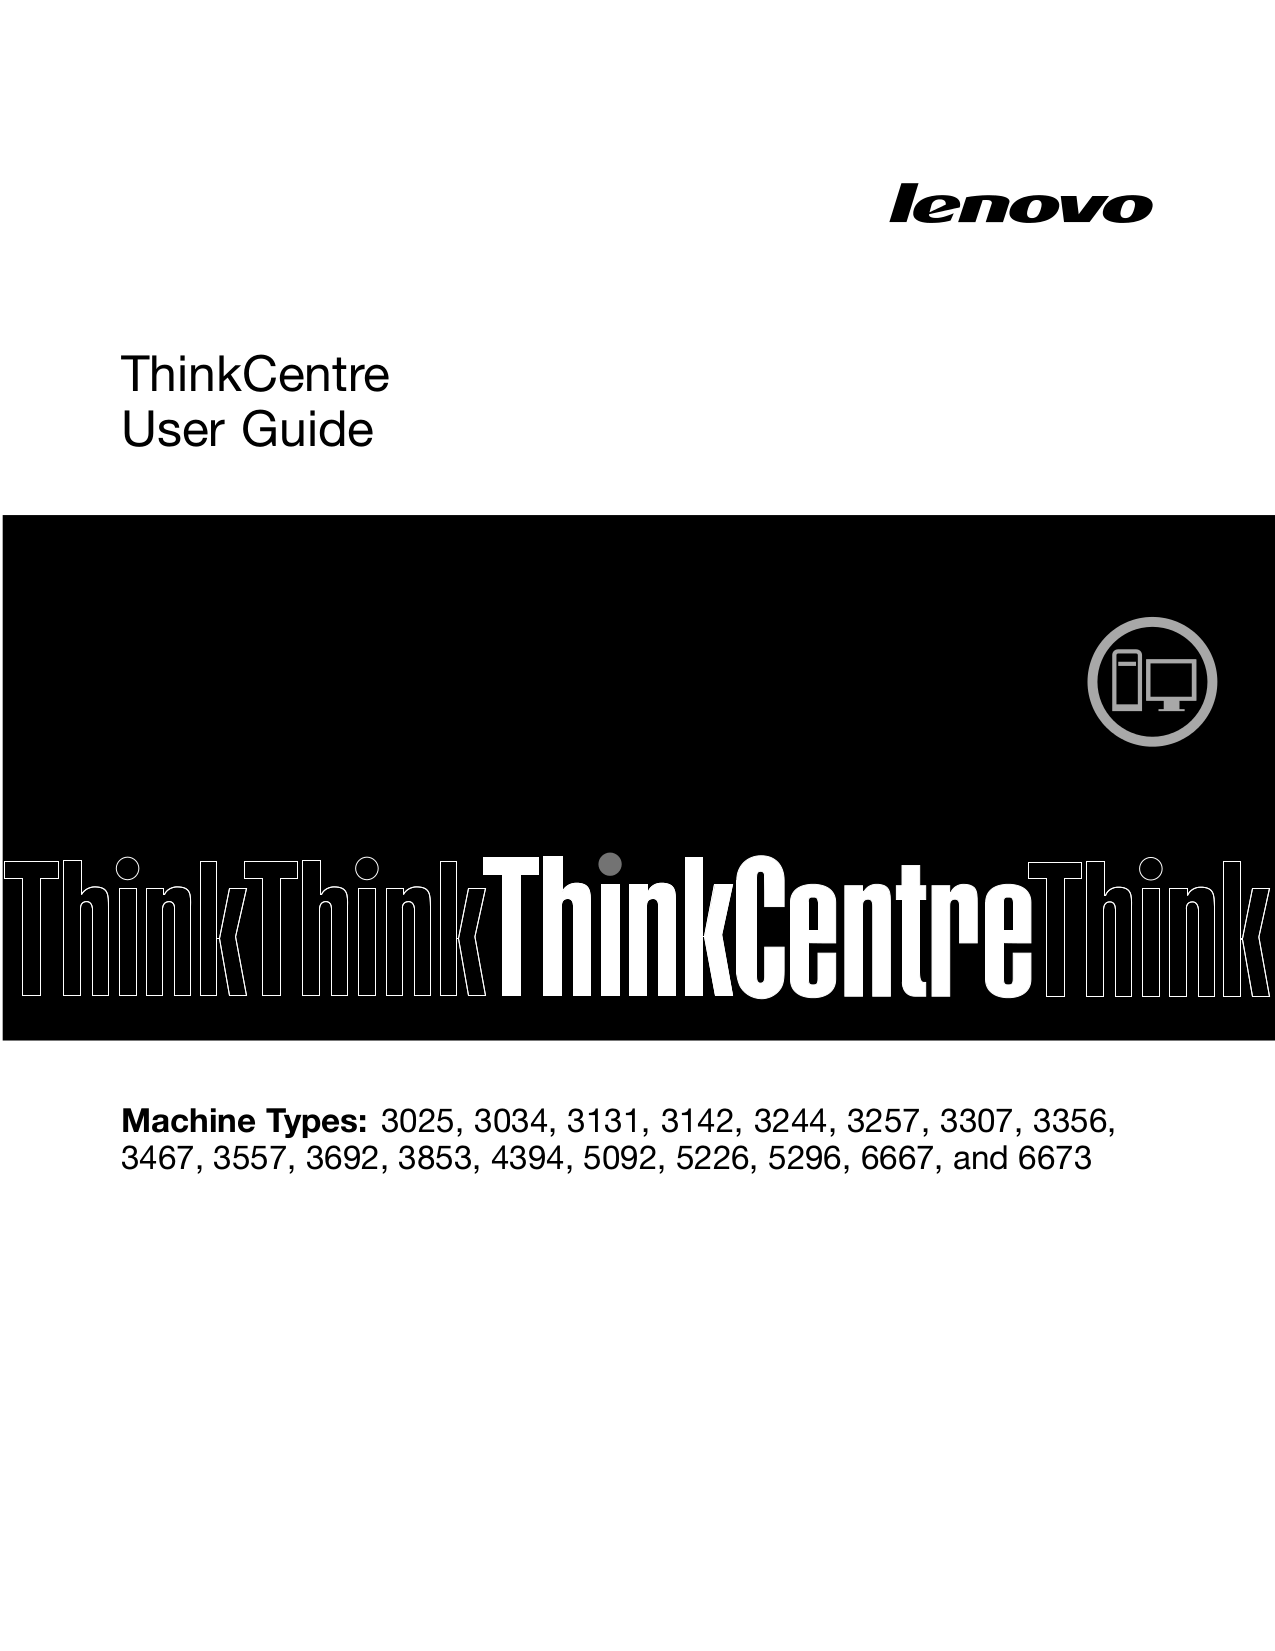 pdf for Lenovo Desktop ThinkCentre M90p 3557 manual